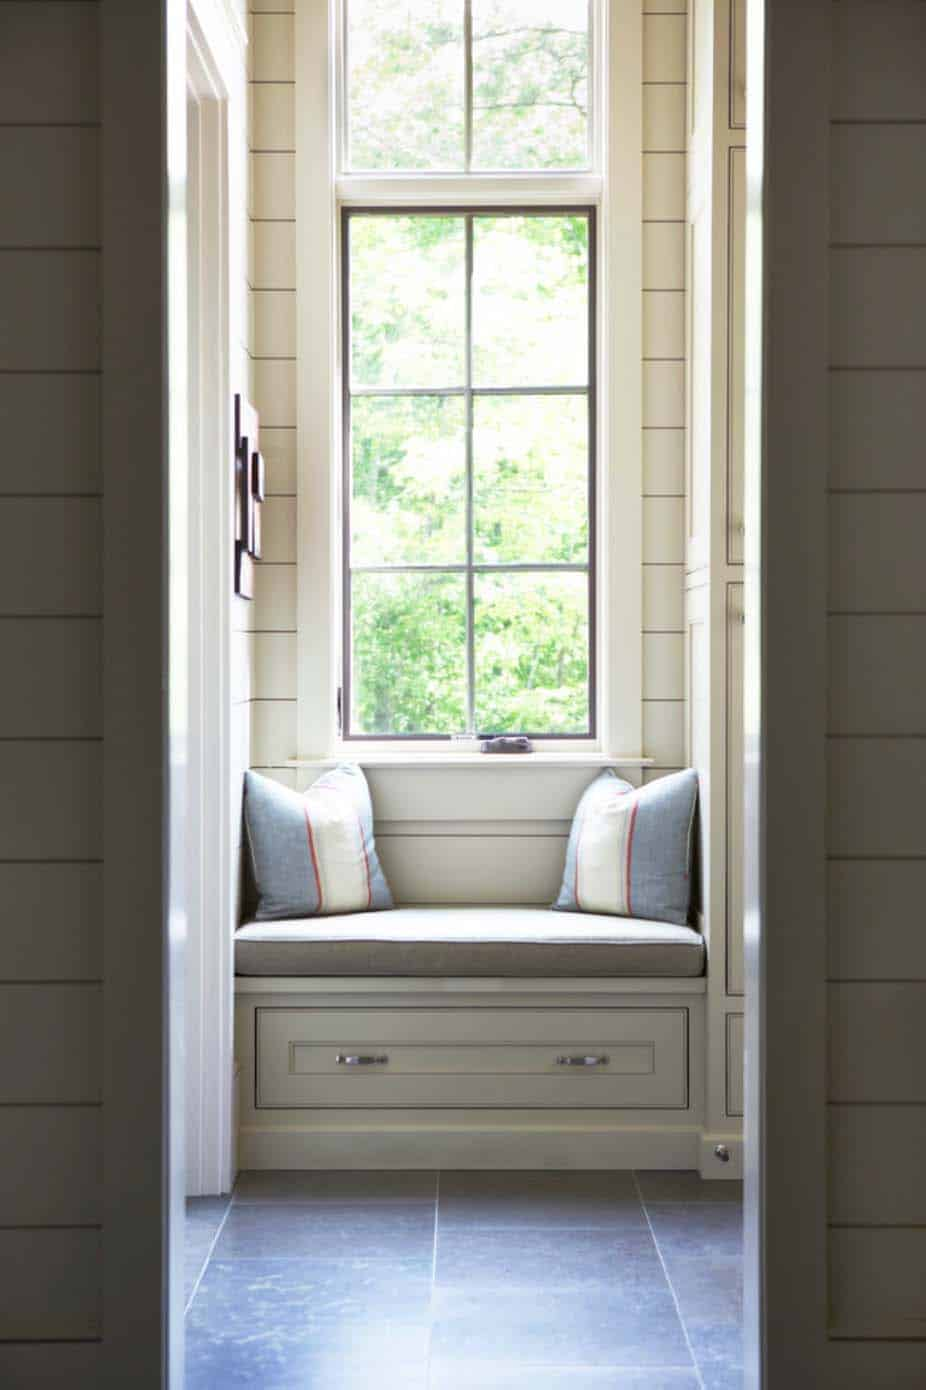 waterfront-house-traditional-window-seat